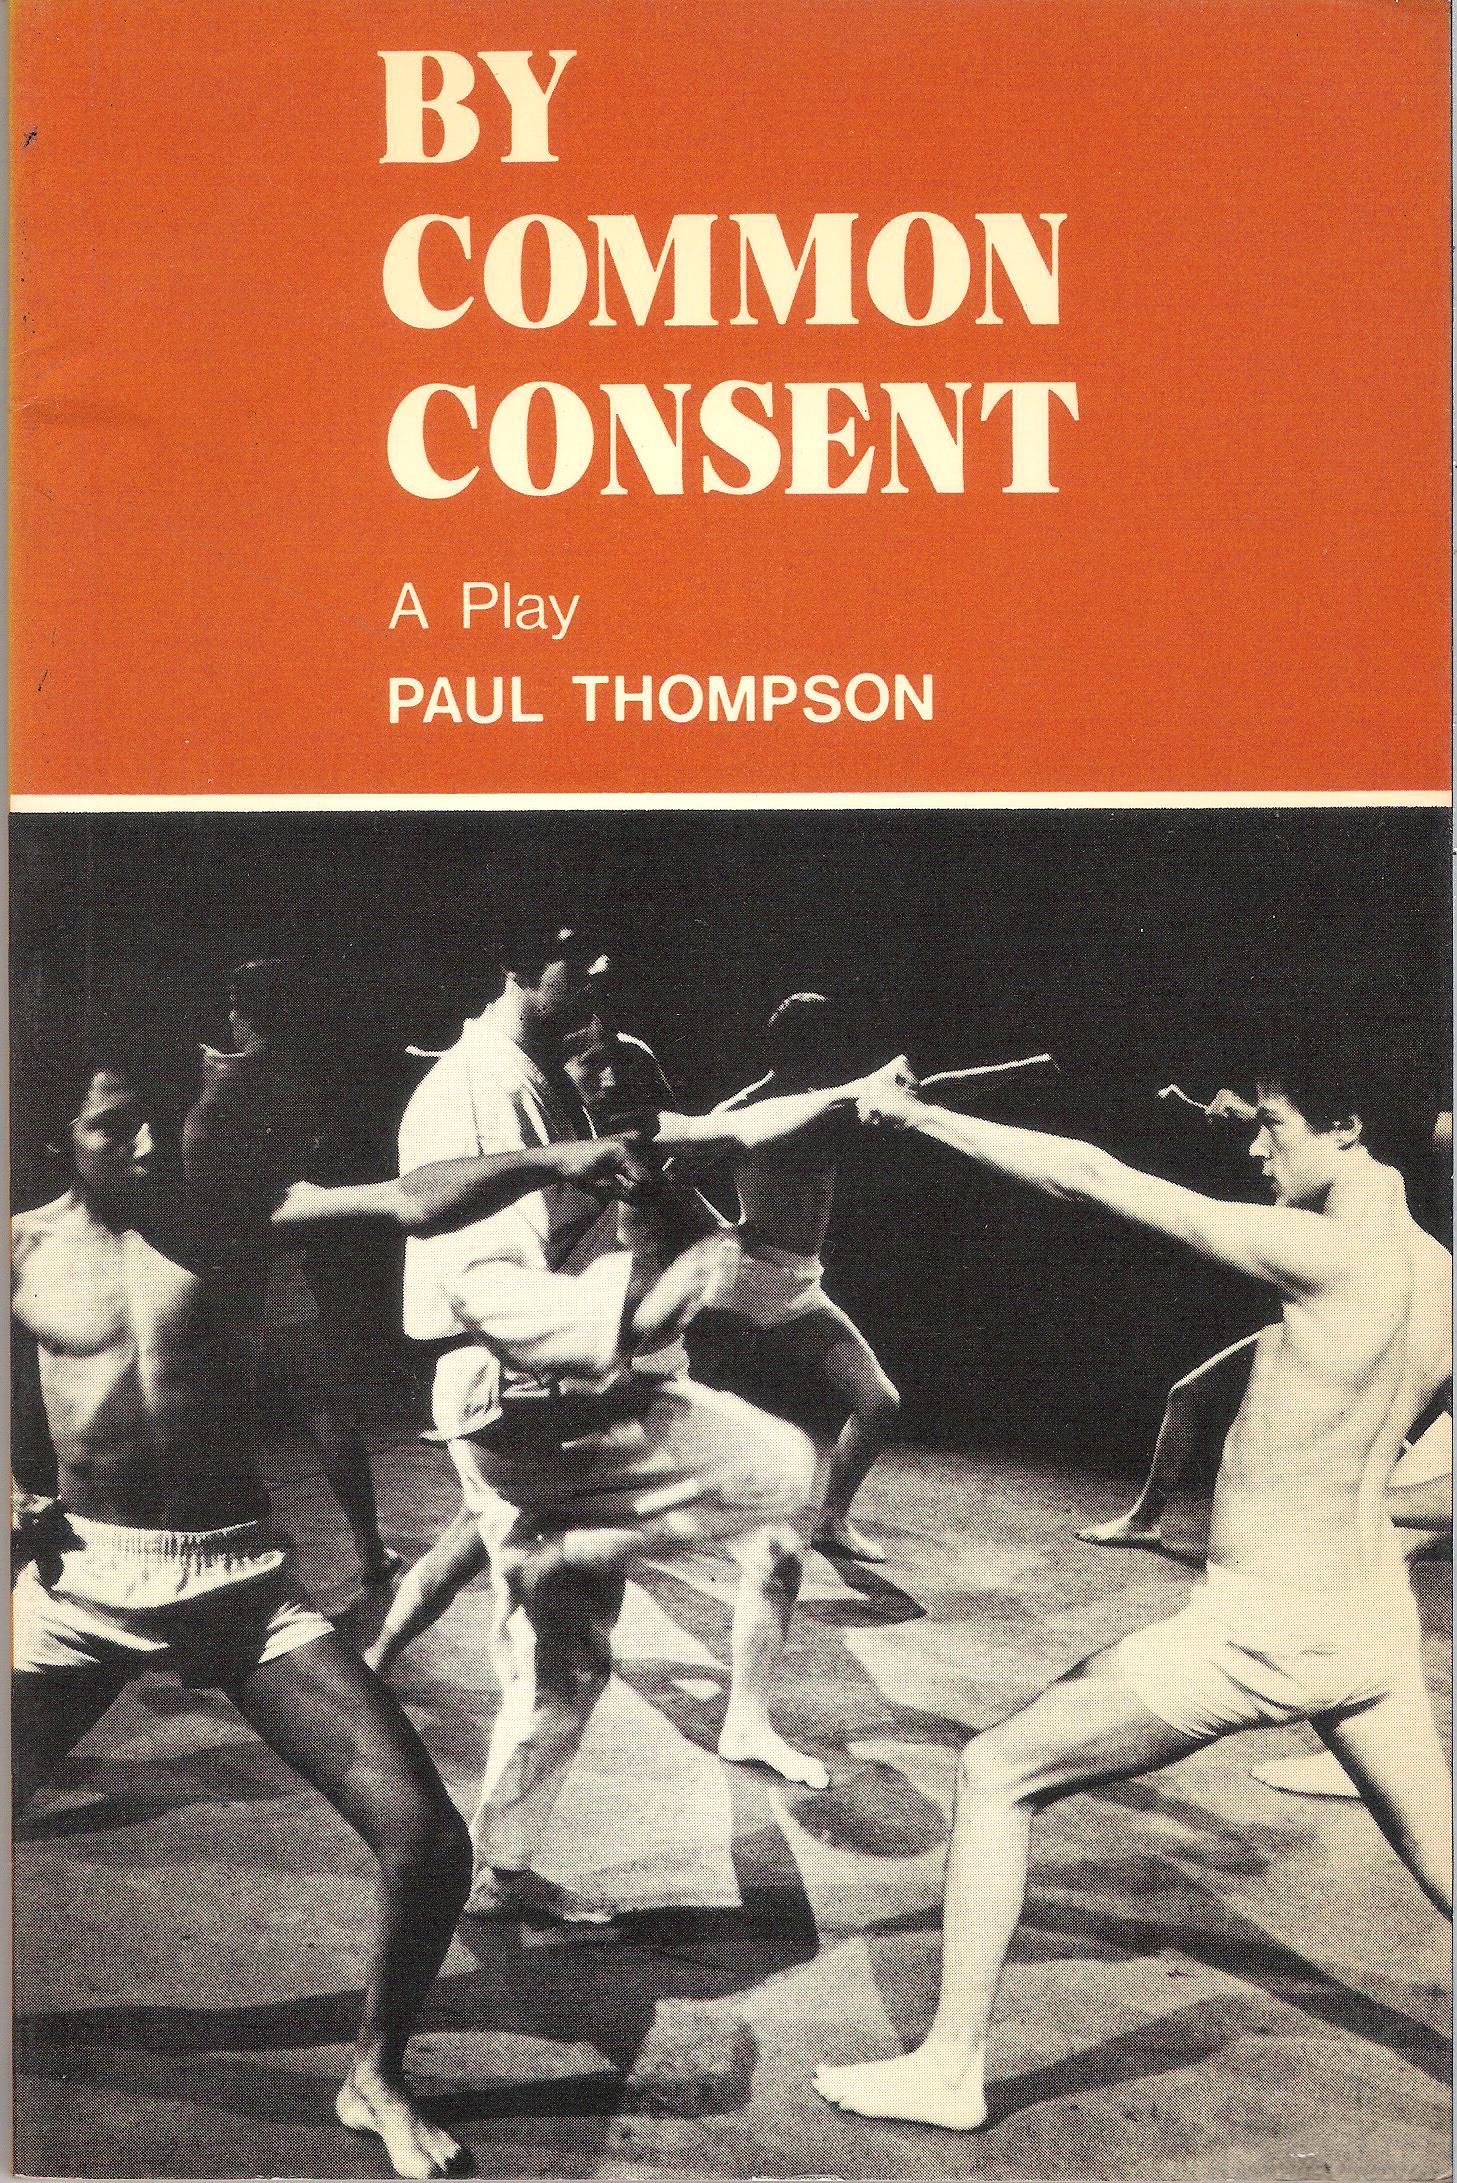 click on the image above to LISTEN TO A SONG FROM 'BY COMMON CONSENT'.